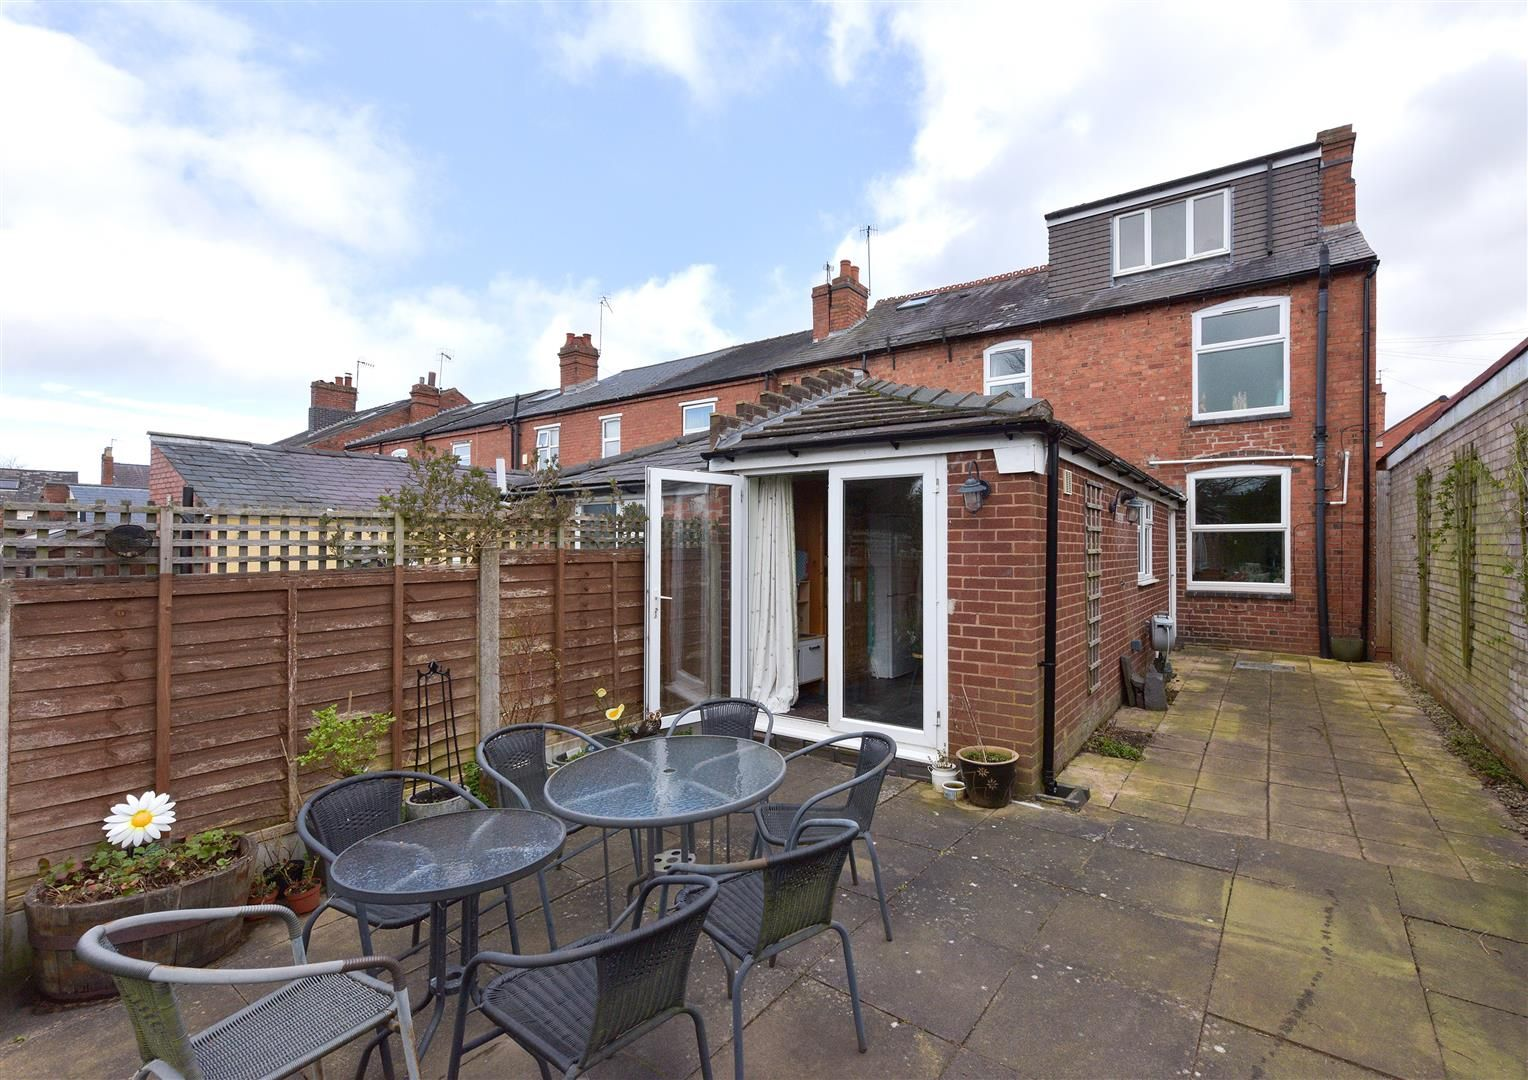 3 bed end-of-terrace for sale  - Property Image 19